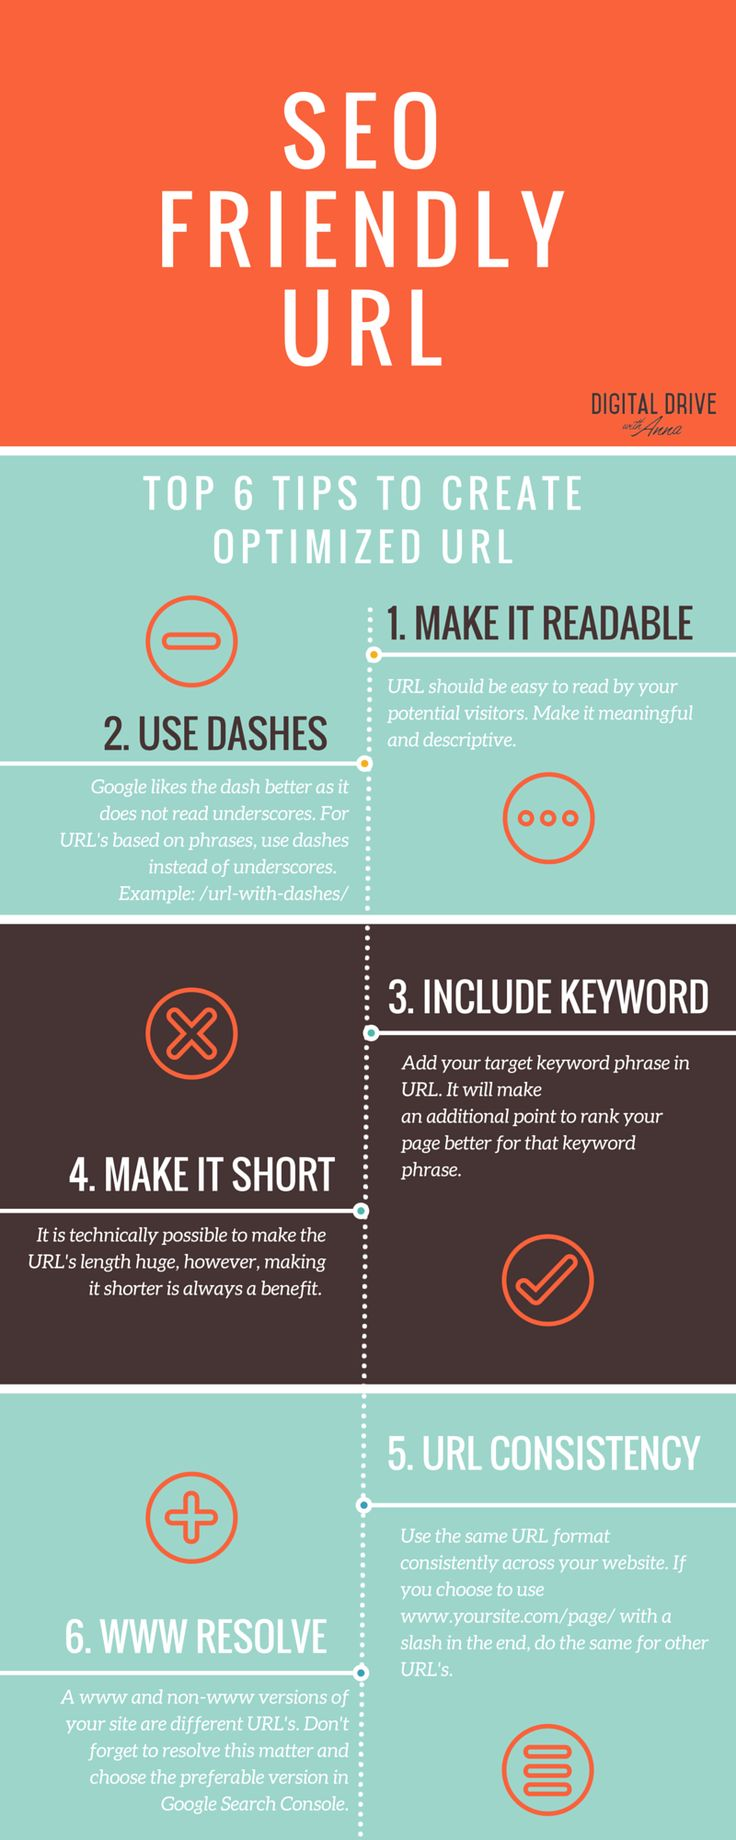 Infographic shows the tips for SEO friendly URL